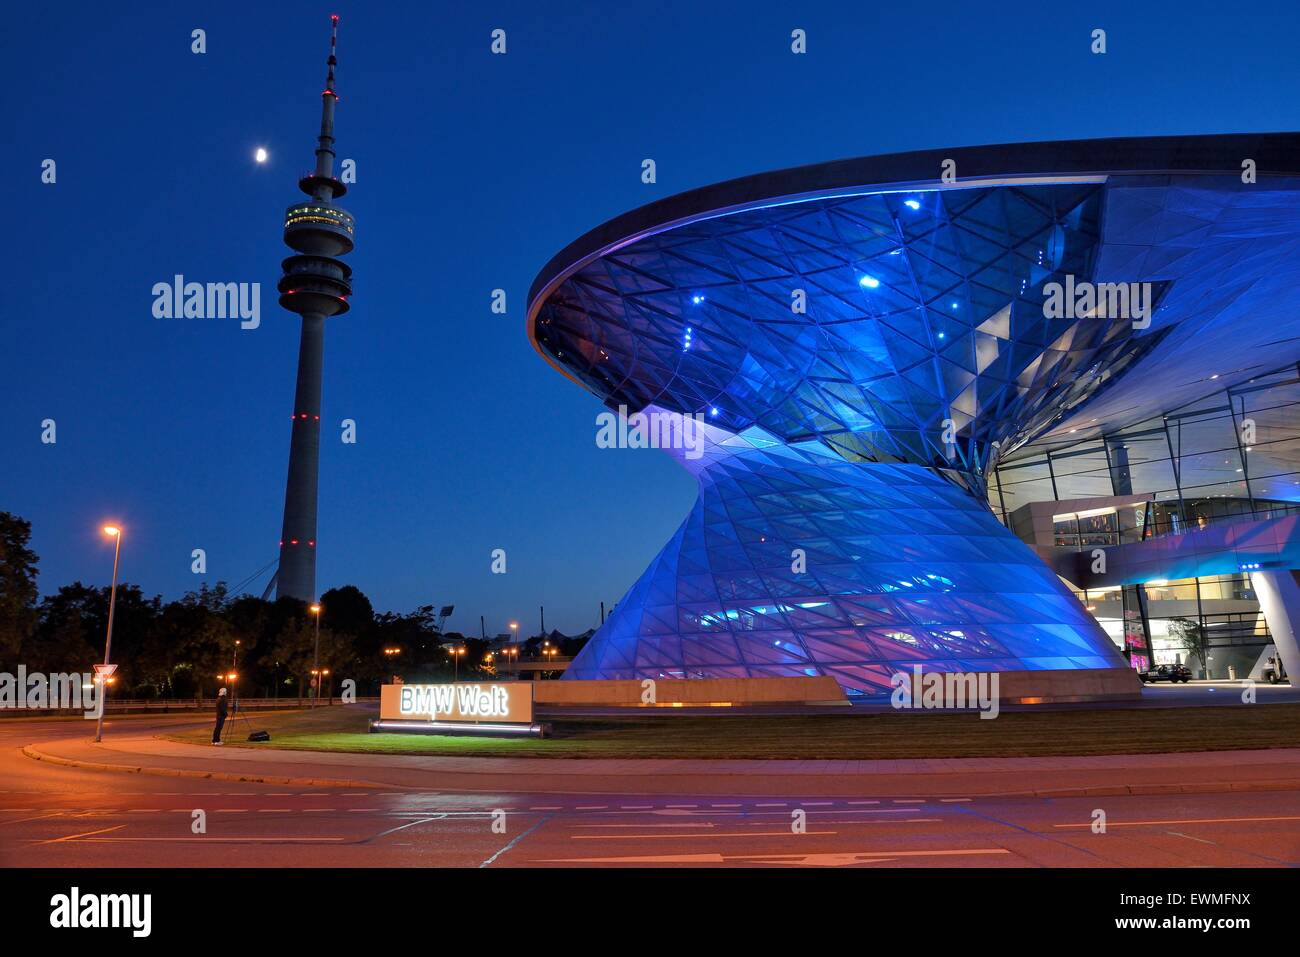 BMW World in evening light, Munich, Bavaria, Germany - Stock Image